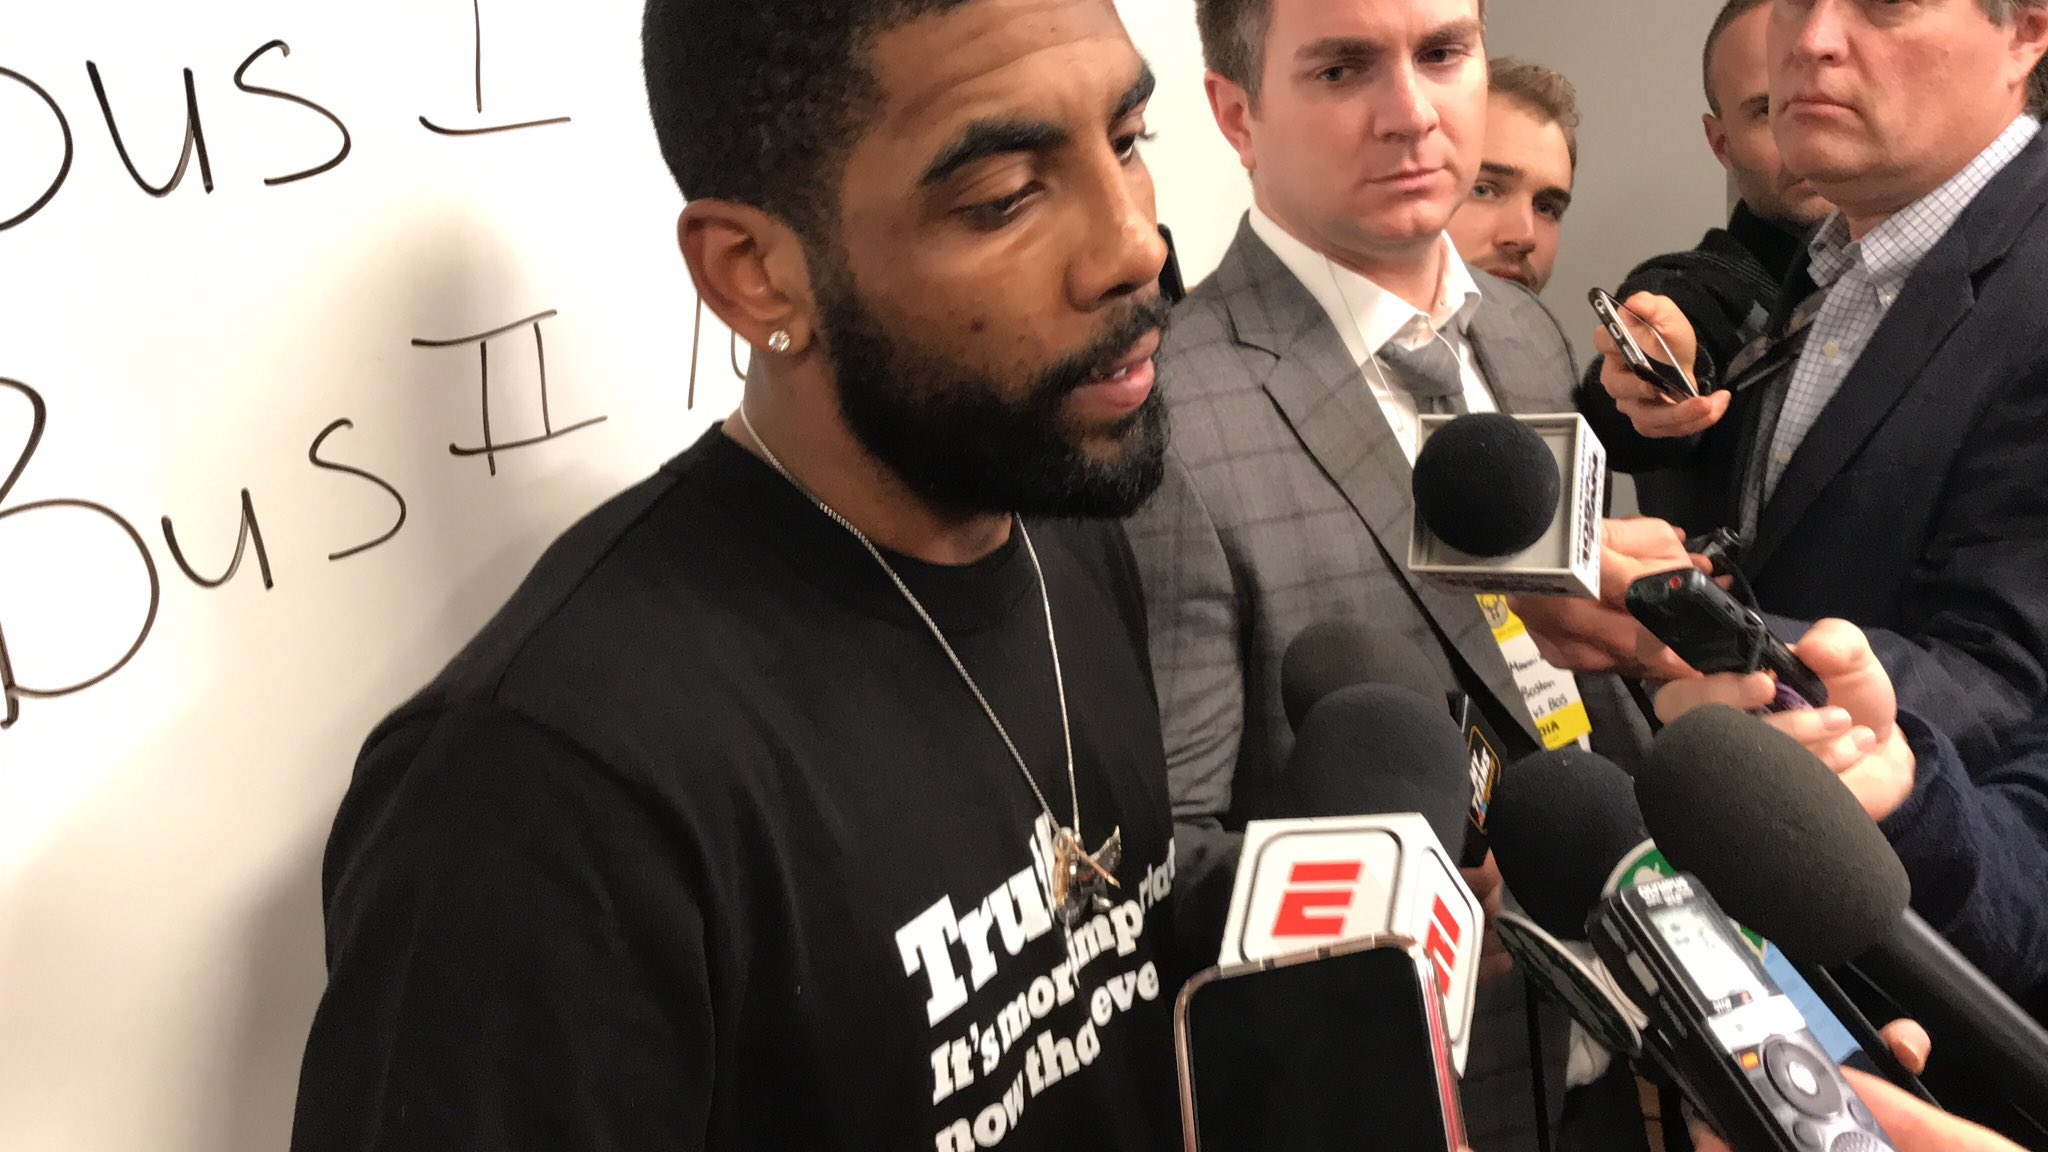 Kyrie Irving wore the New York Times' 'Truth' shirt after Celtics' 1-point loss, but why?